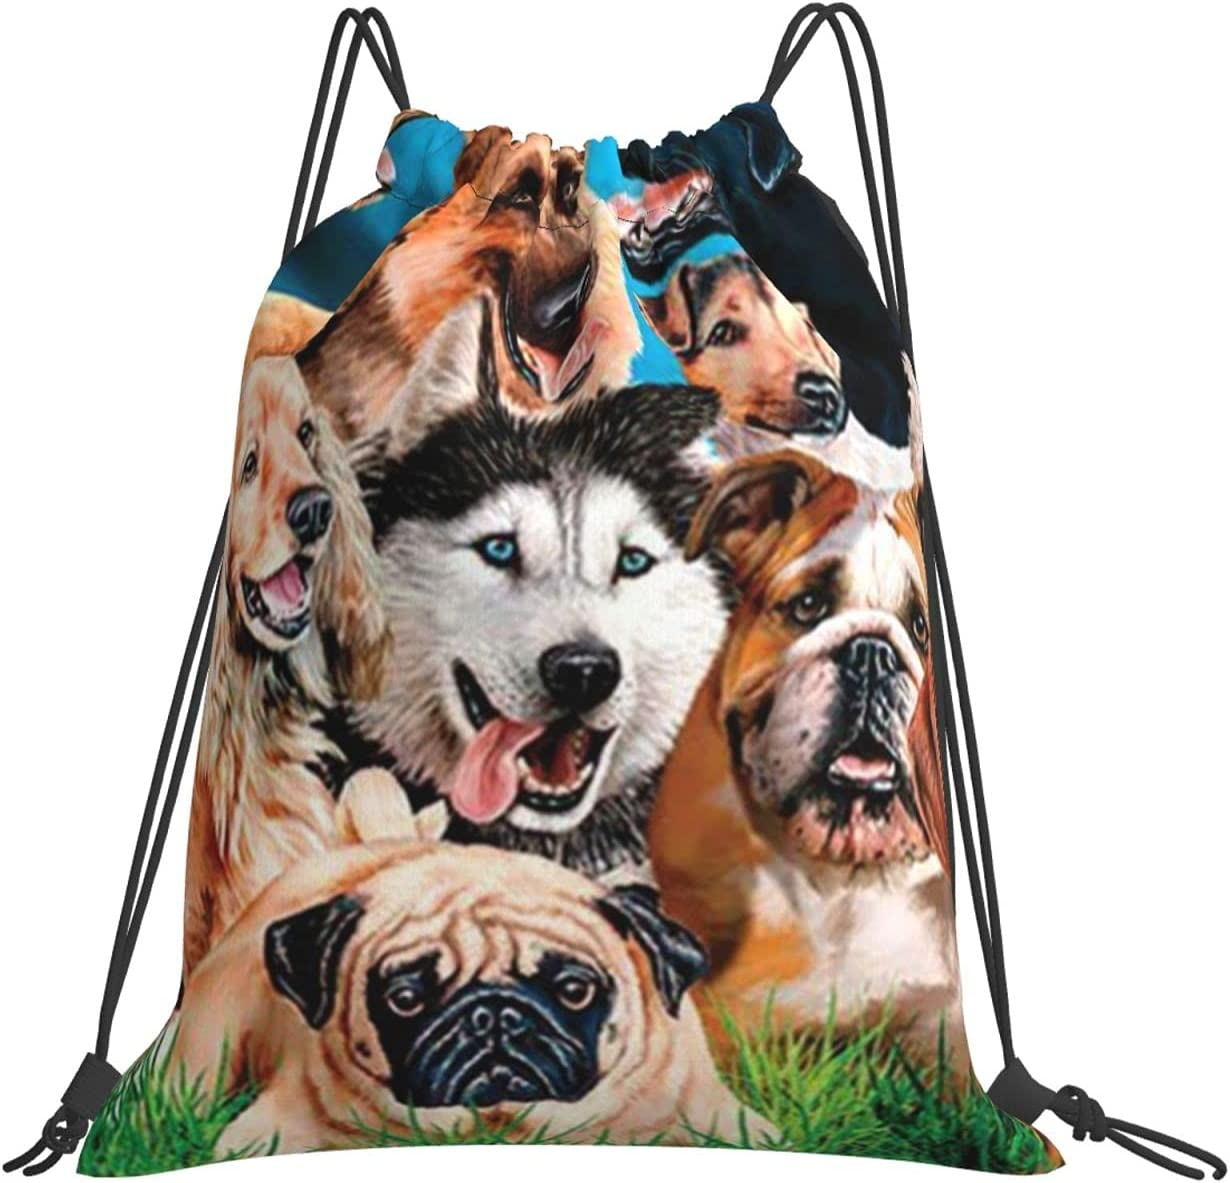 Dogs Drawstring Backpack Polyester Classic Hiking OFFicial shop It is very popular Gym Bag Tr for